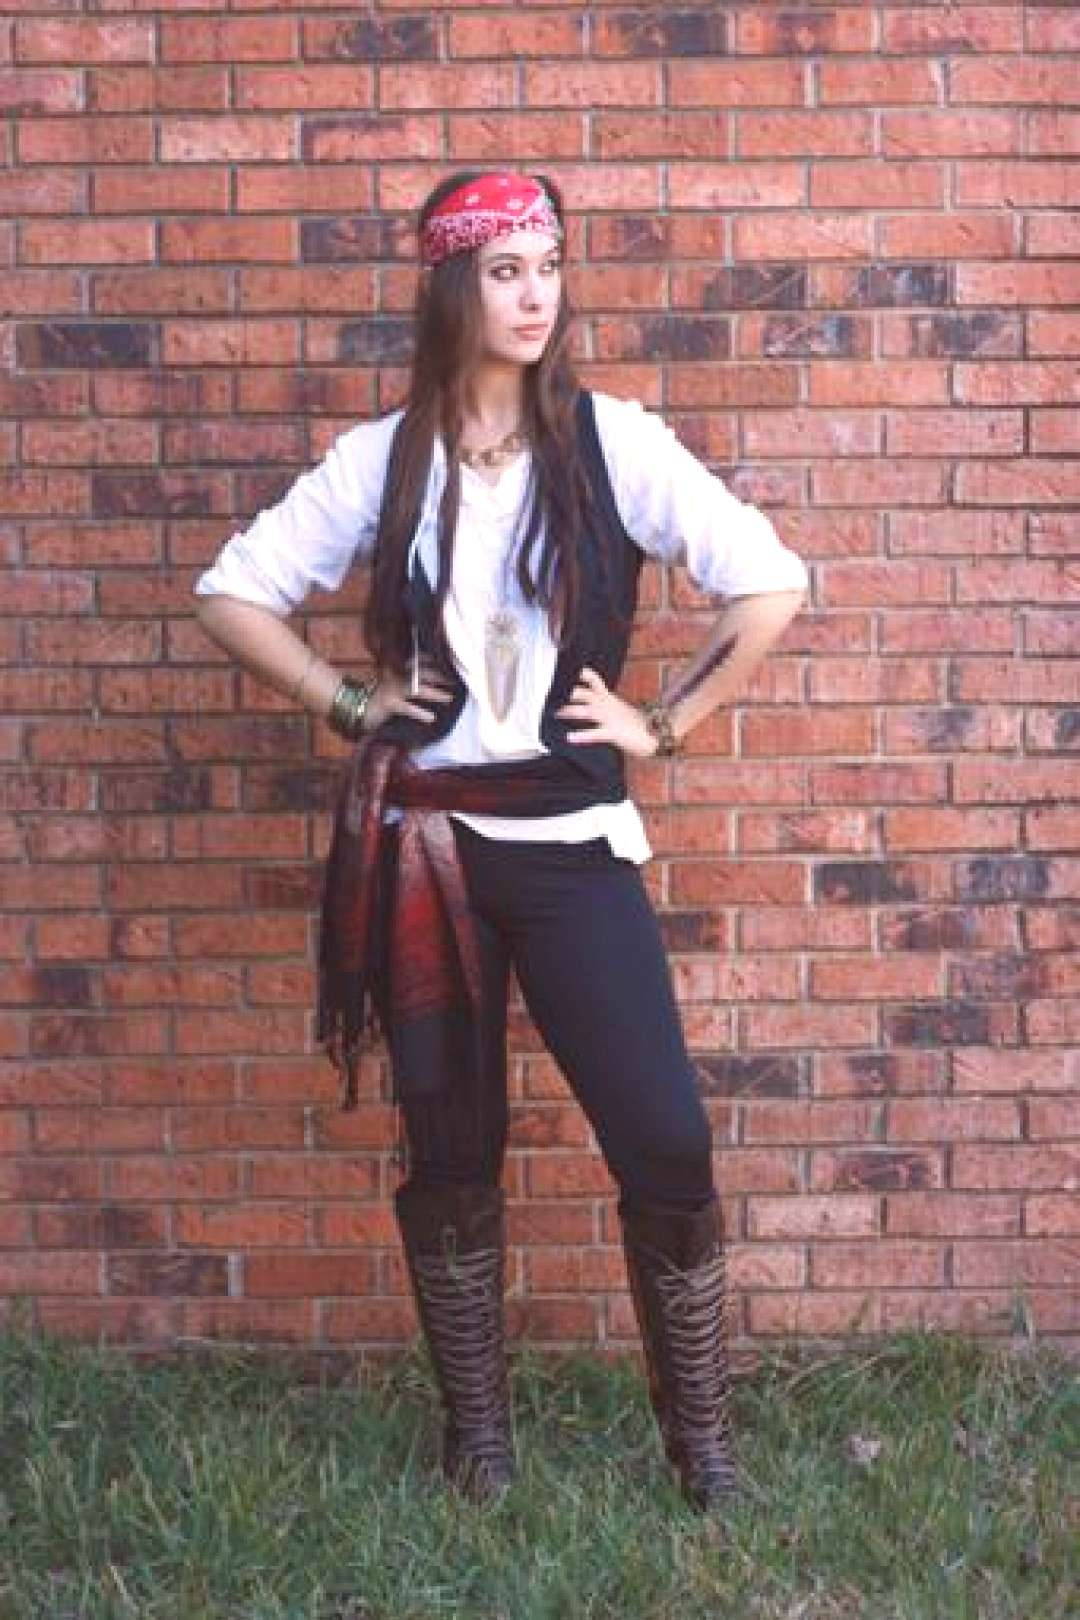 This post contains the best modest Halloween costumes for women. The costume ideas include DIY, Dis